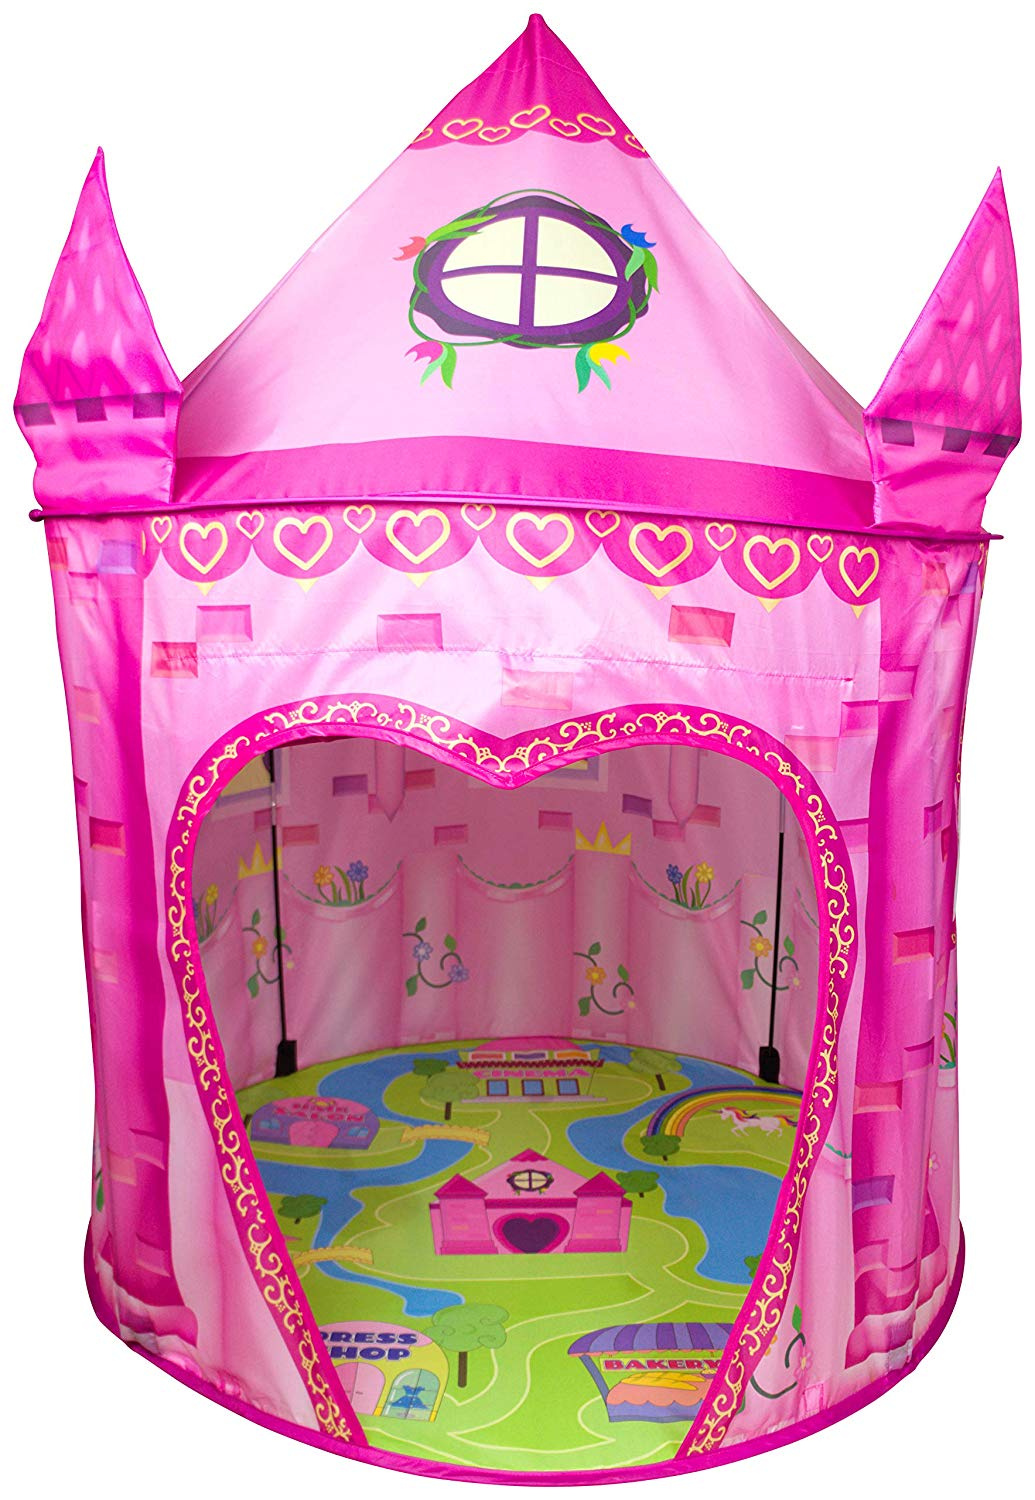 Buy Online  sc 1 st  Fishpond & Princess Play Tent Playhouse | Unique Castle Design for Indoor and ...